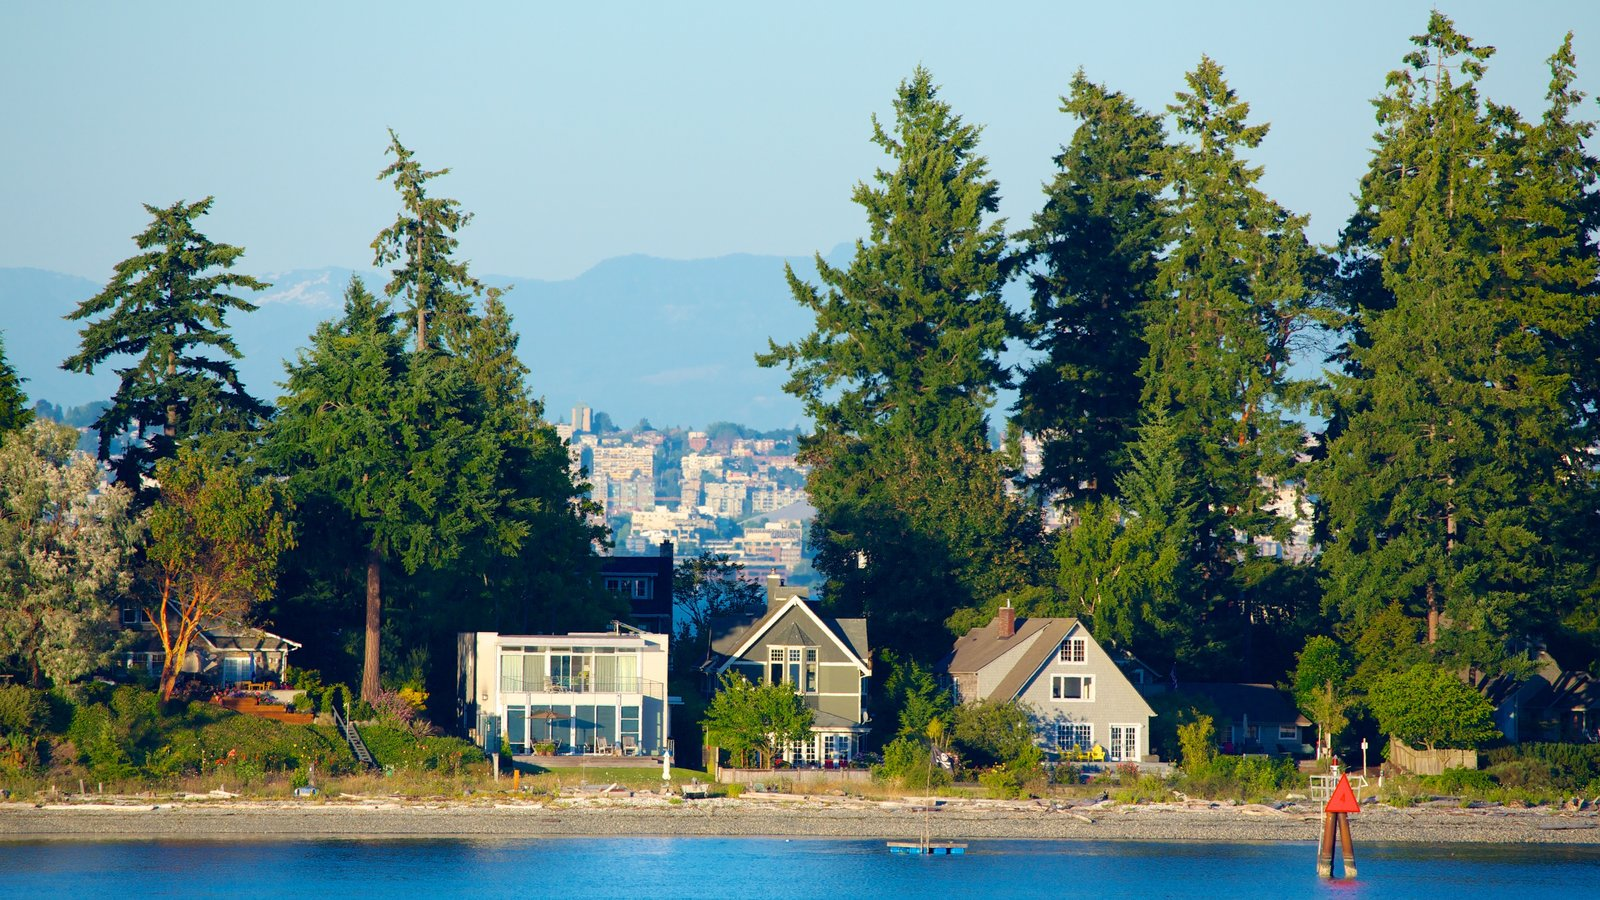 bainbridge island Seven great award-winning wineries on bainbridge island, wa • each independent • each passionate about wine • check out wine events and wine tasting.